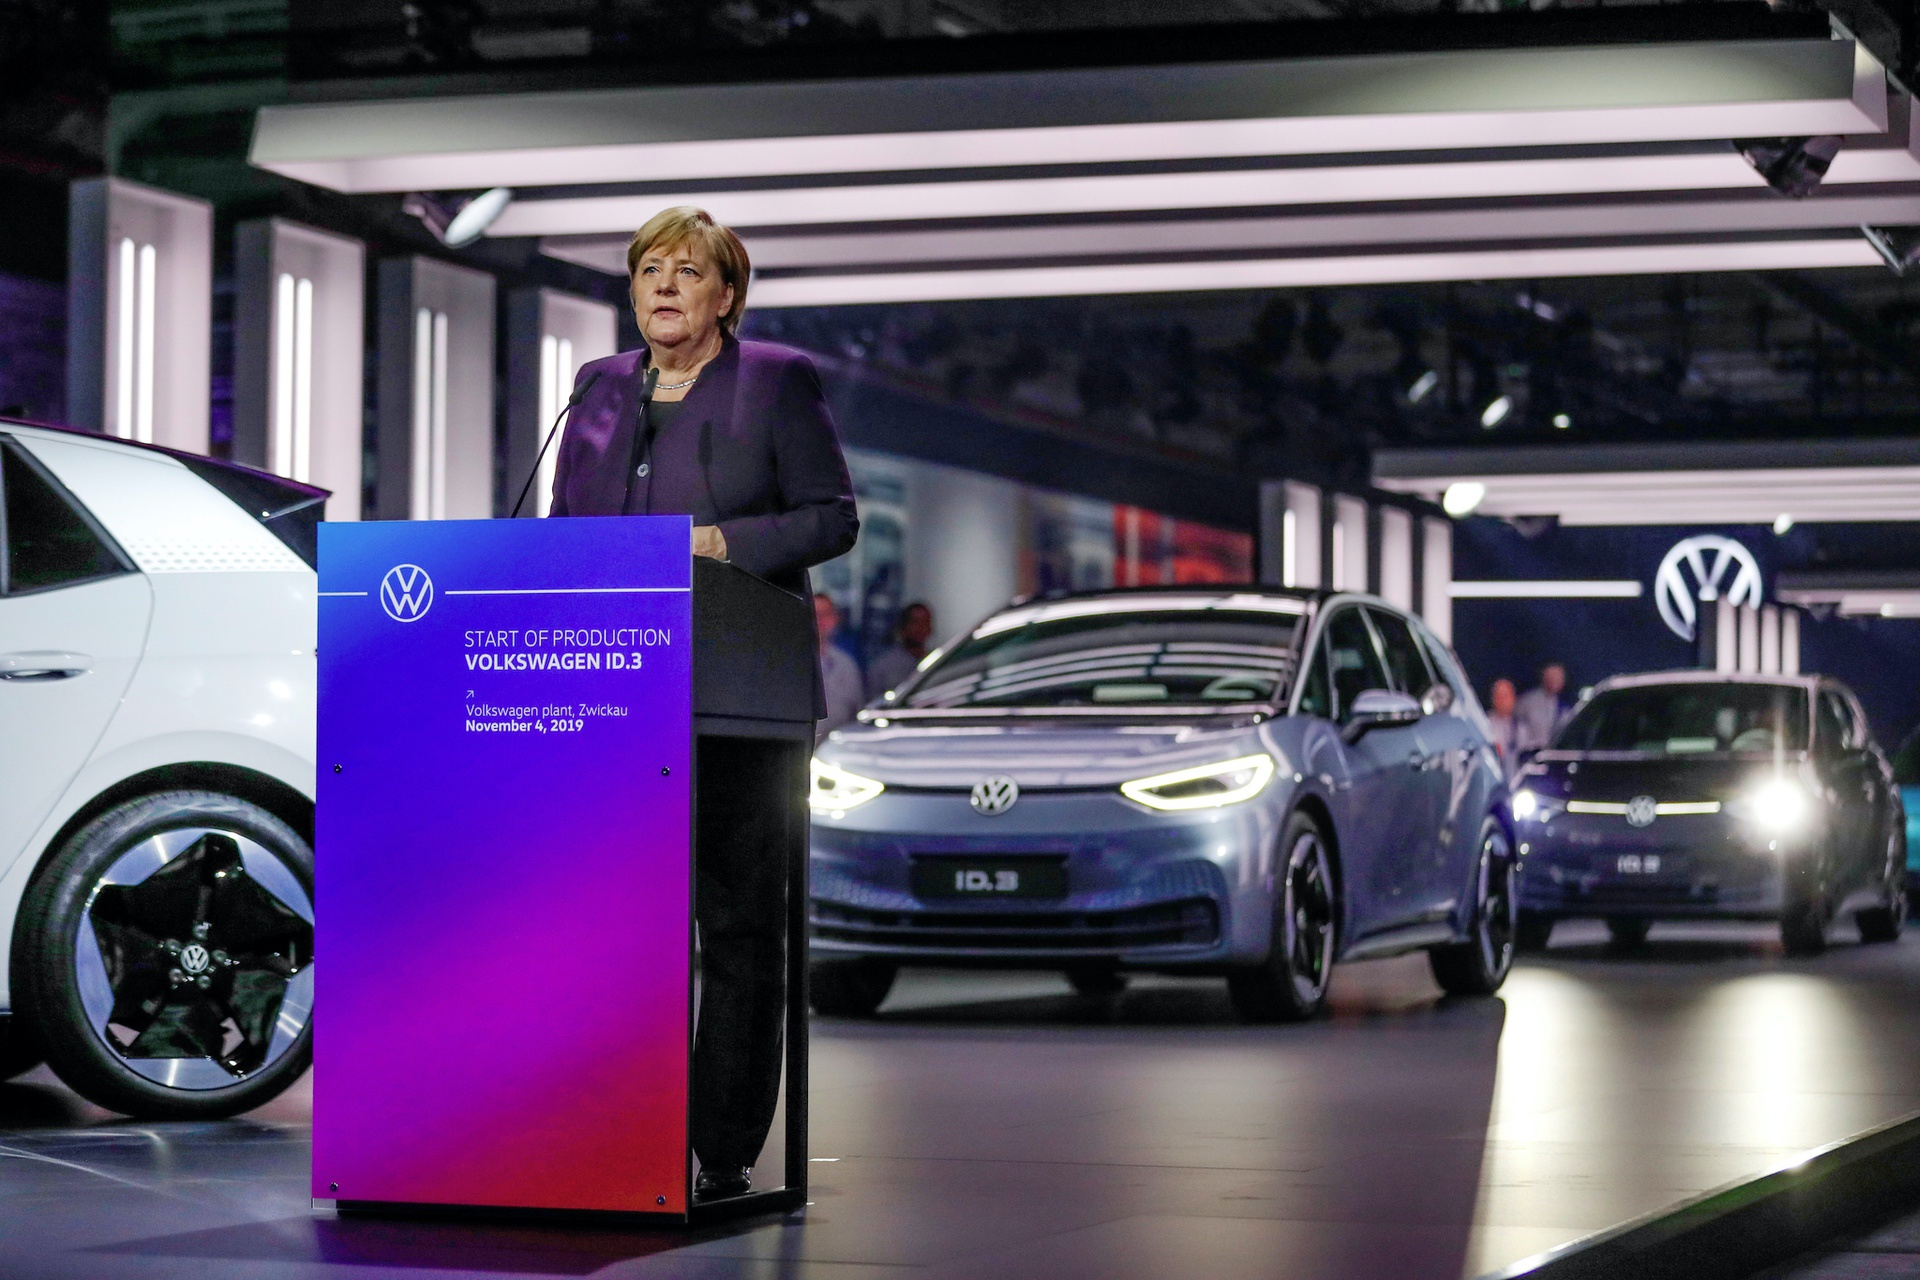 Volkswagen initiates system changeover to e-mobility ñ Product